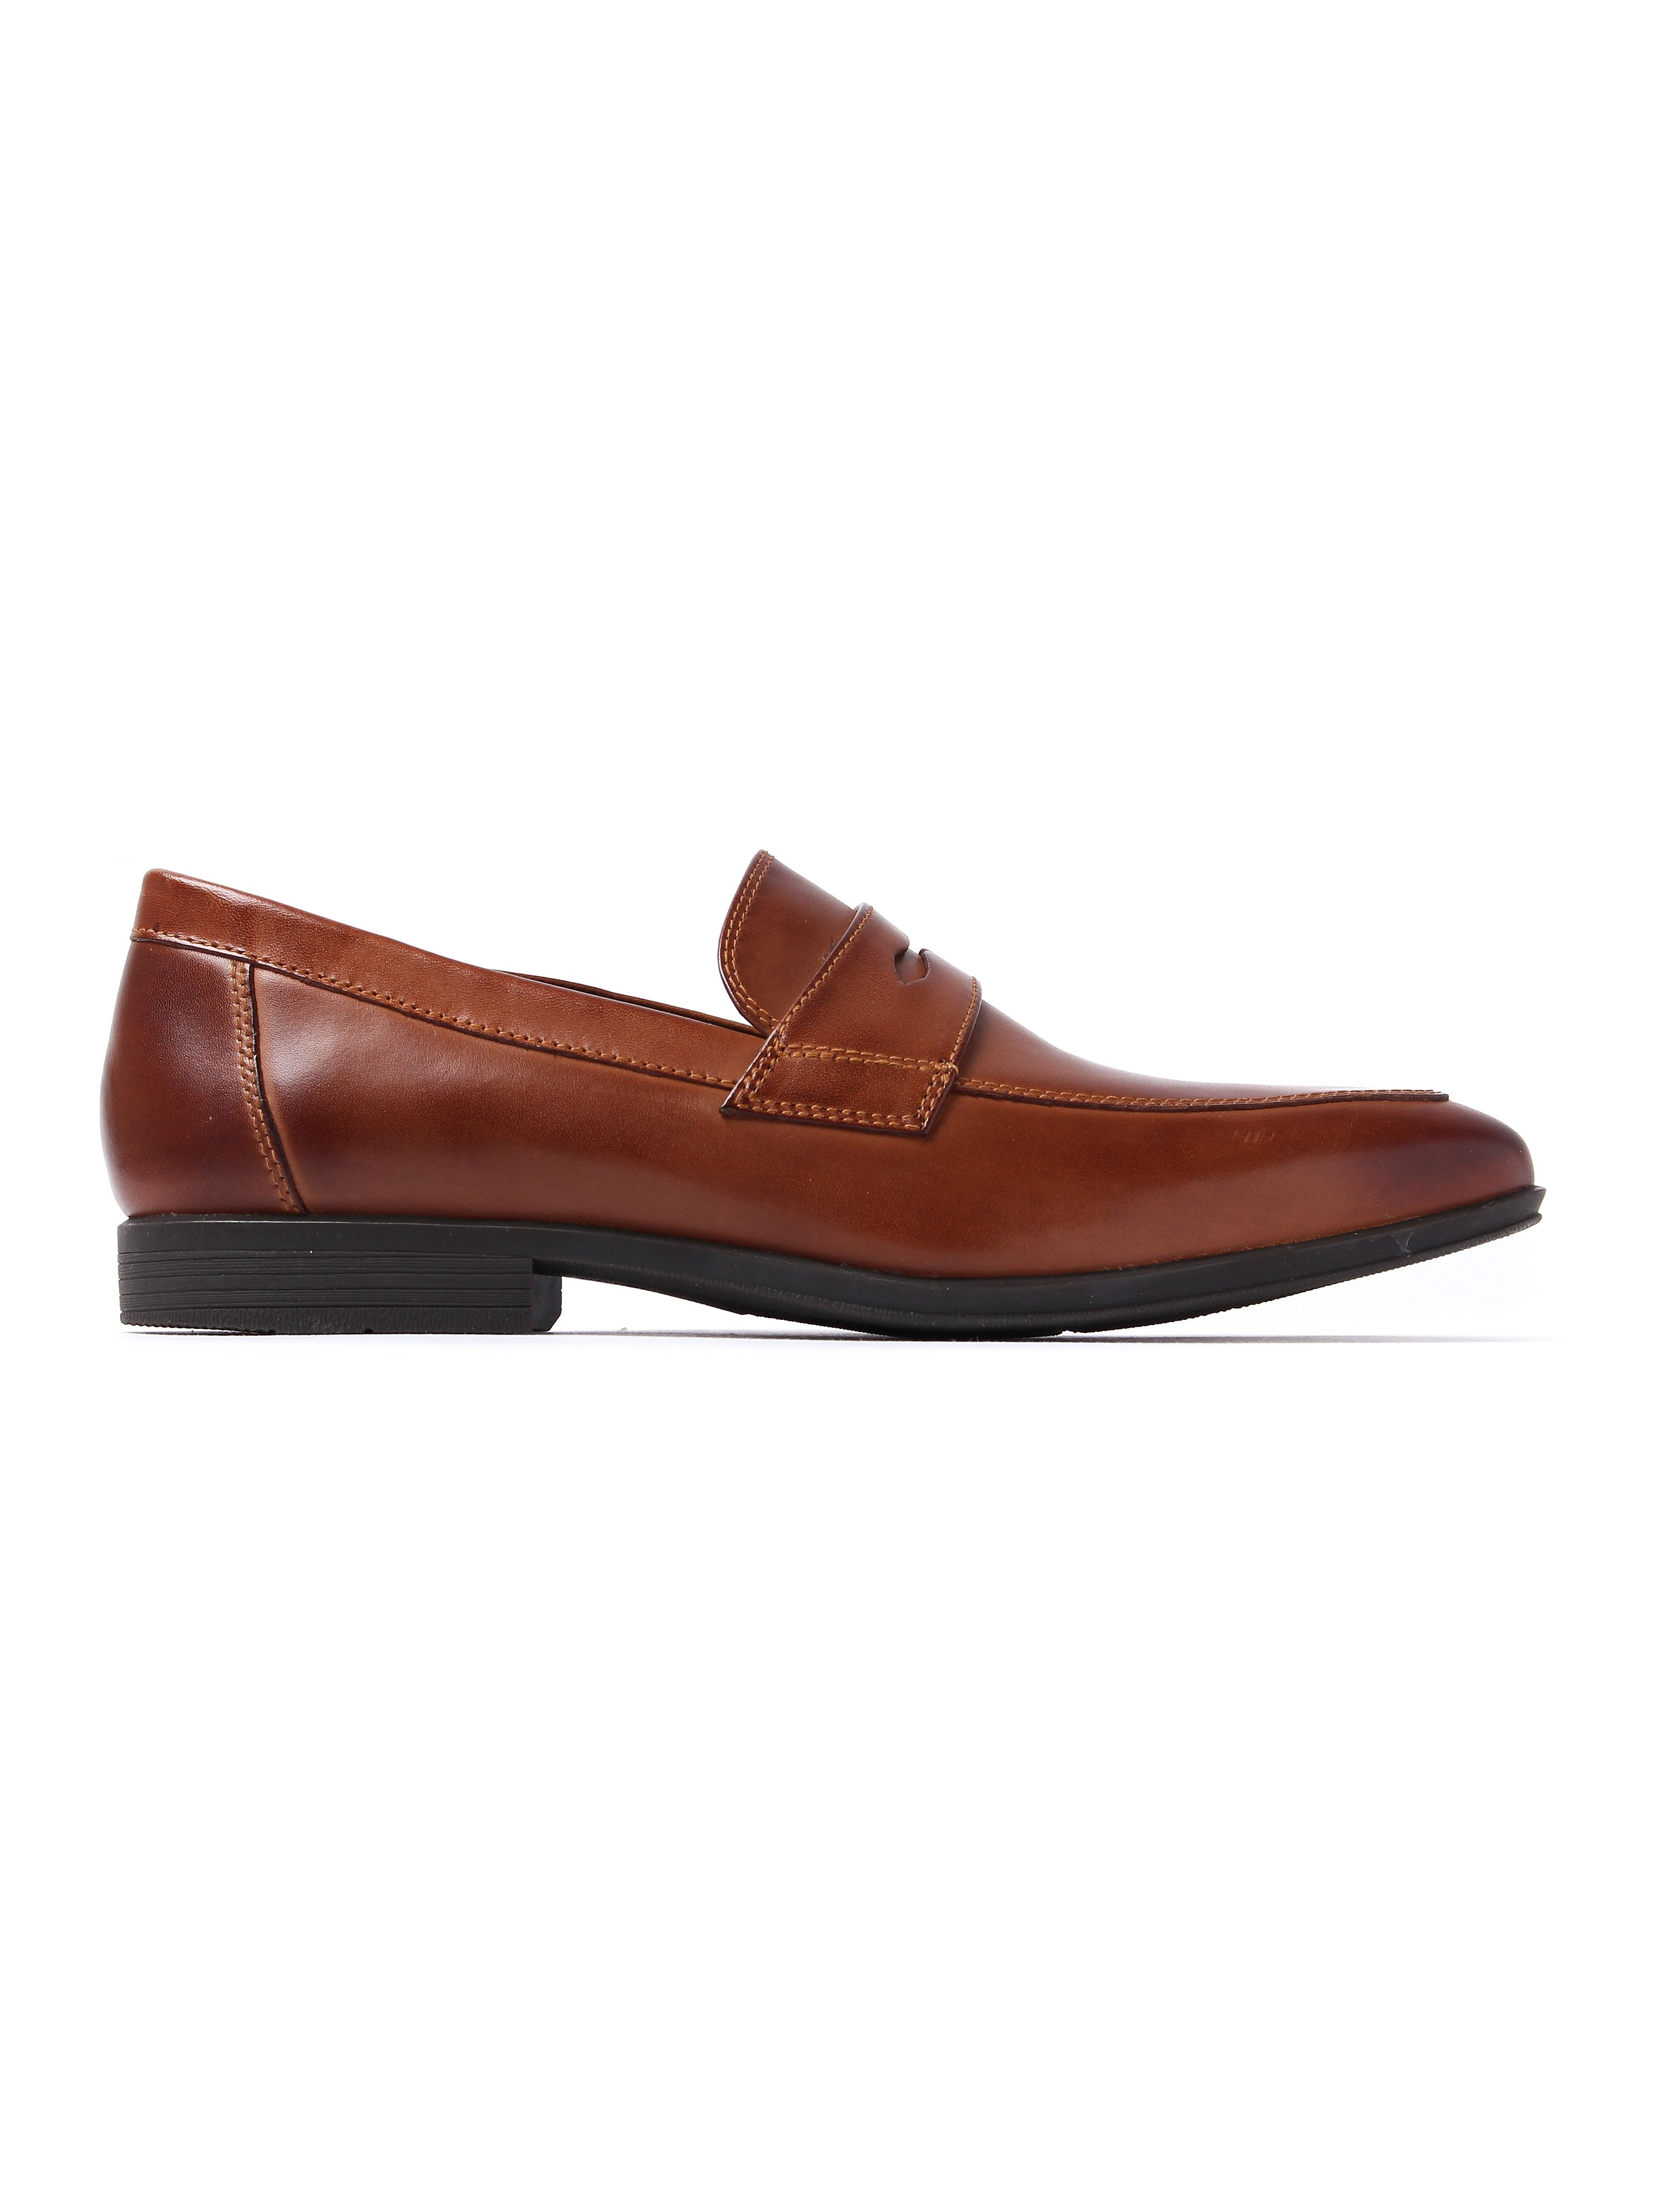 Rockport Men's Style Connected Penny Loafers - Brown